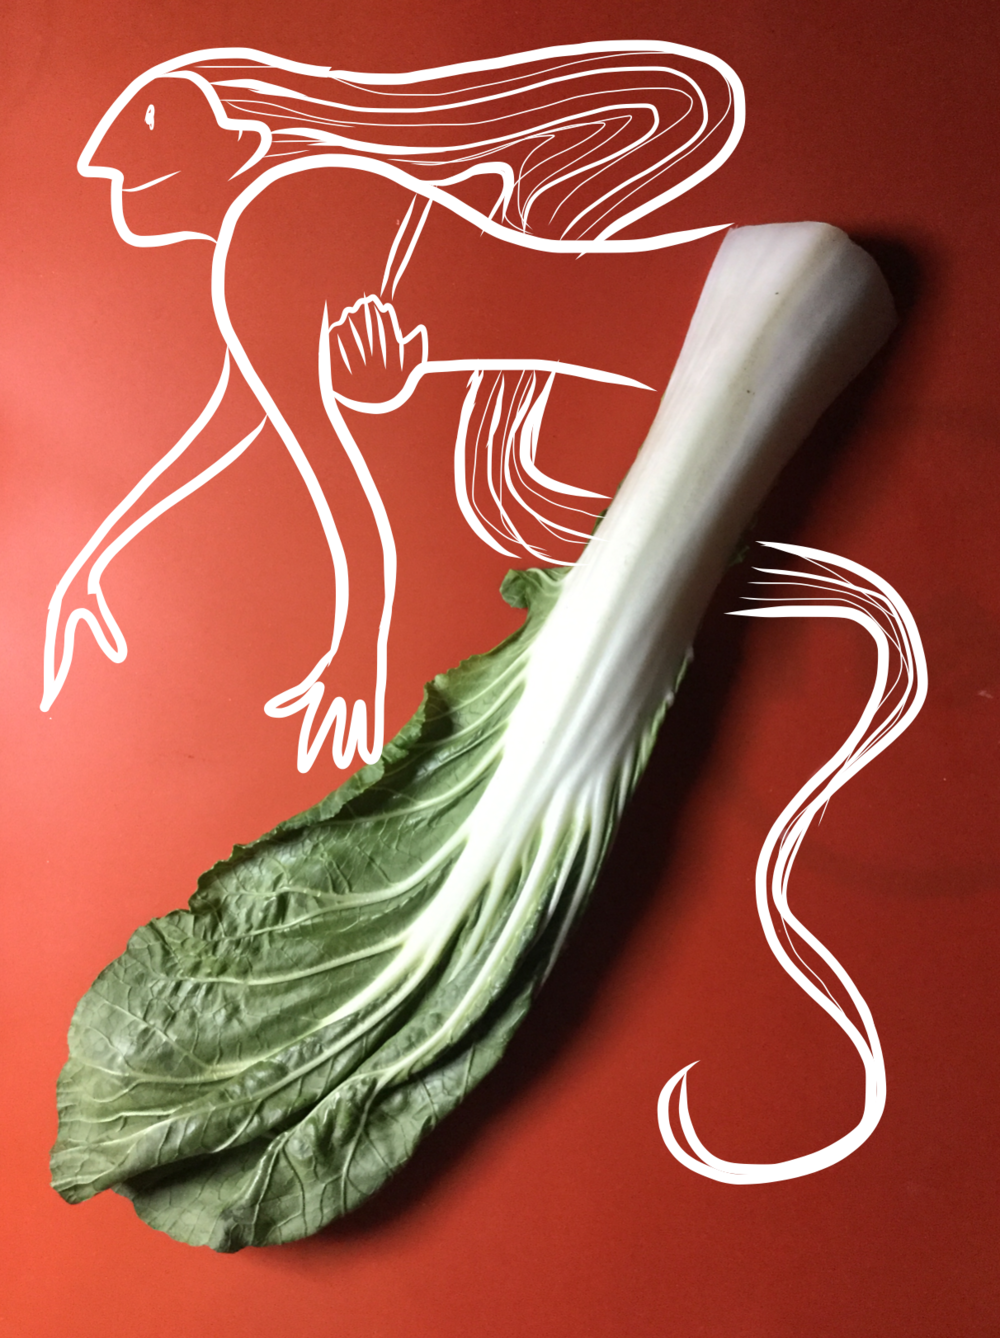 Bok Choy Mermaid